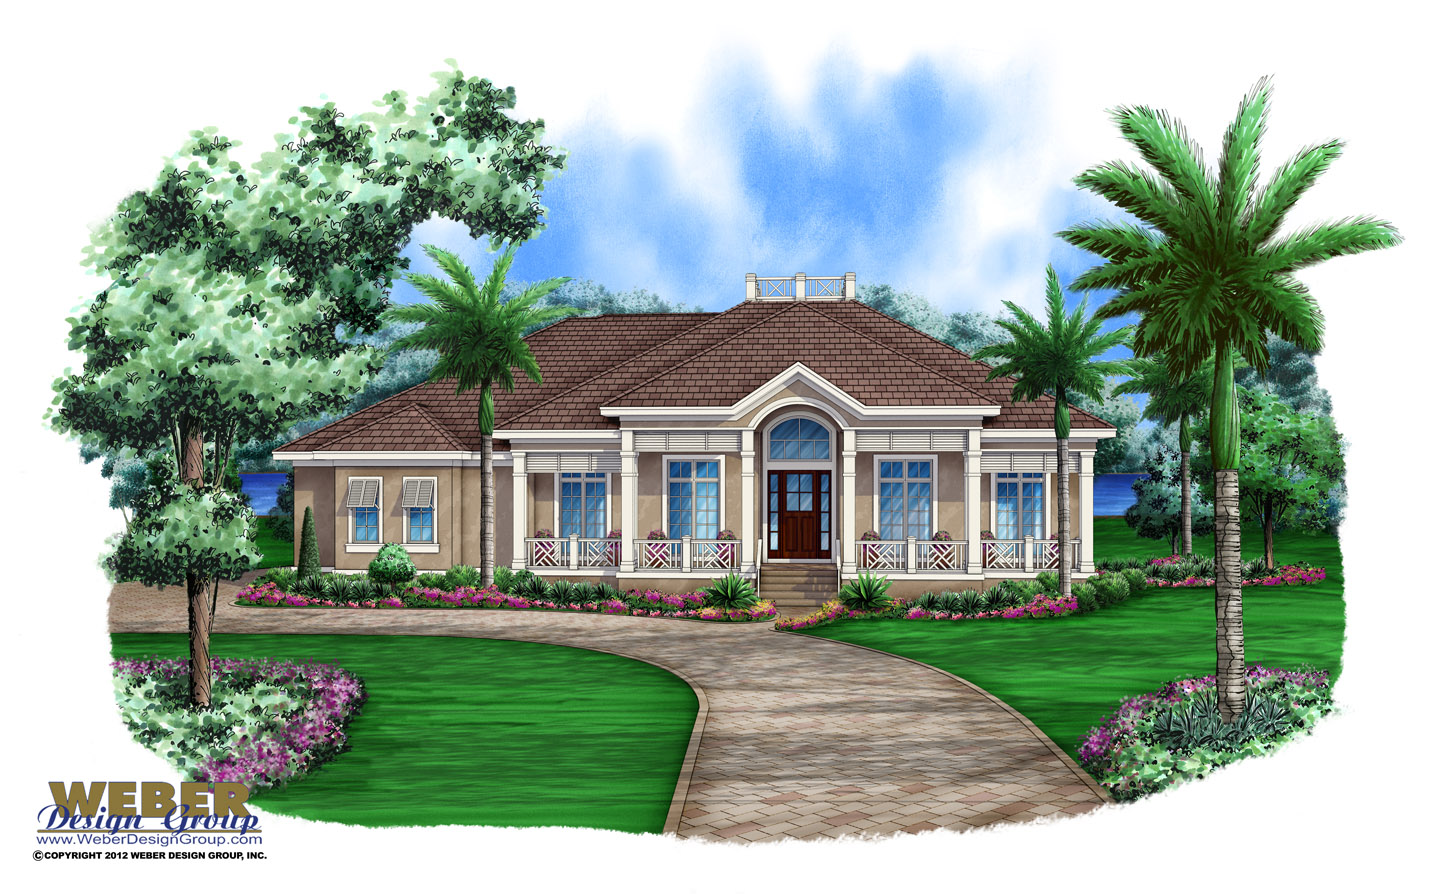 Beach house plan olde florida west indies beach home for Two story florida house plans